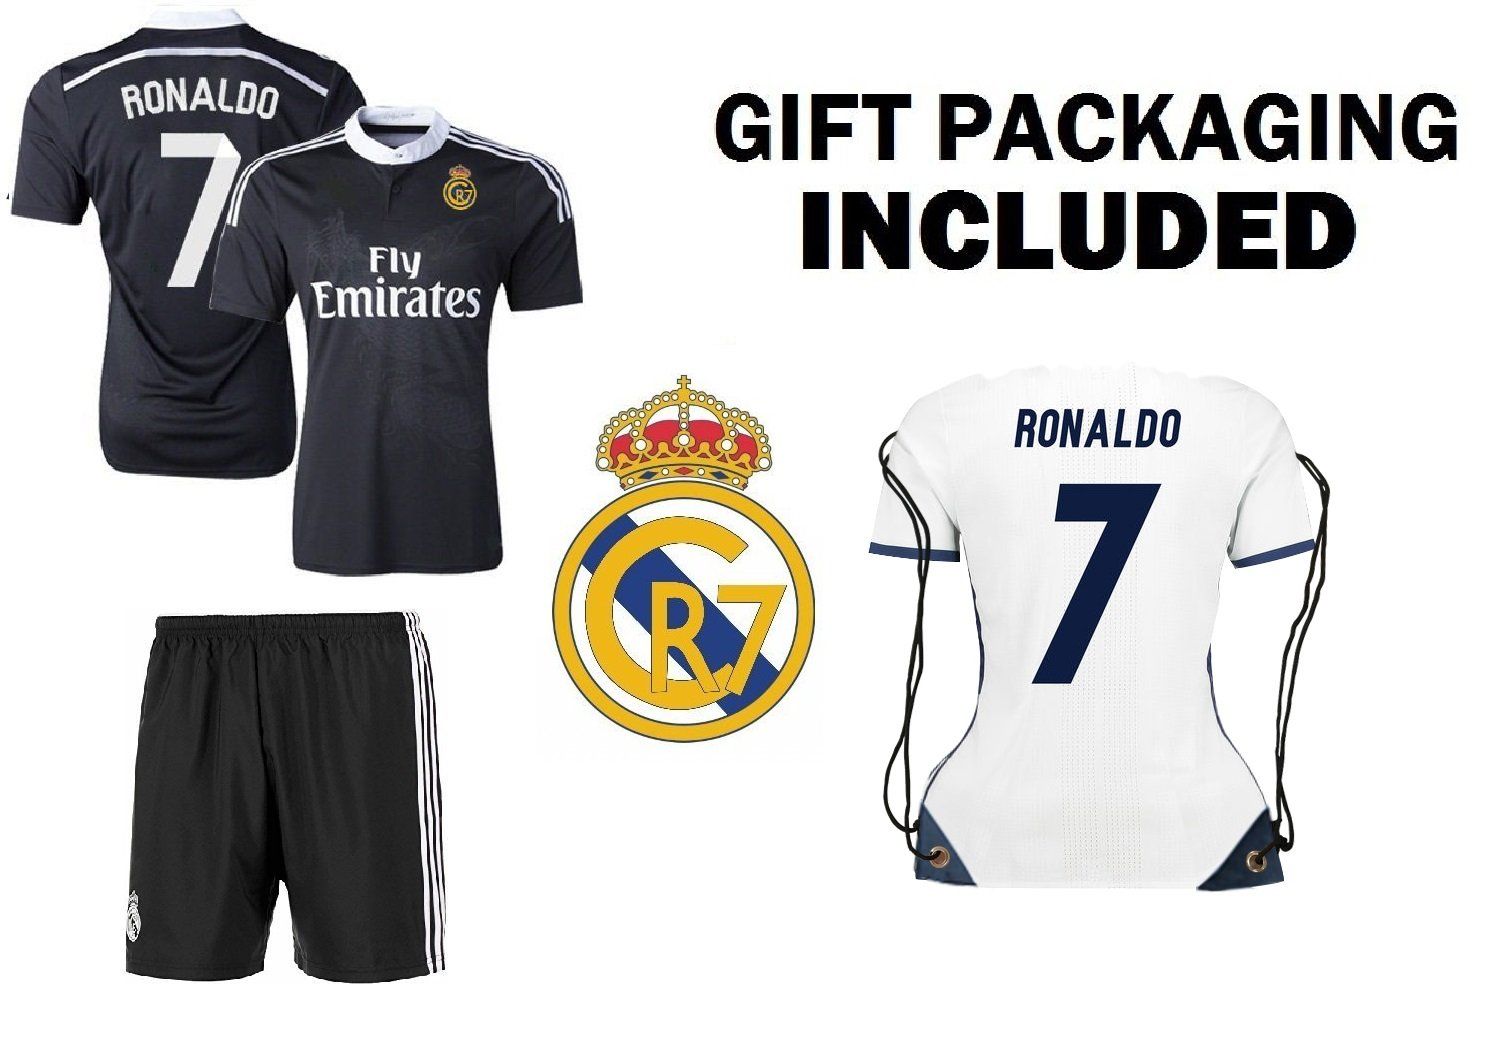 37c7c414f1b AMAZING GIFT FOR SOCCER FANS  This Fan Kit bag Ronaldo  7 Soccer Premium  Gift Kit bag is engineered to be the BEST GIFT for all soccer fans!